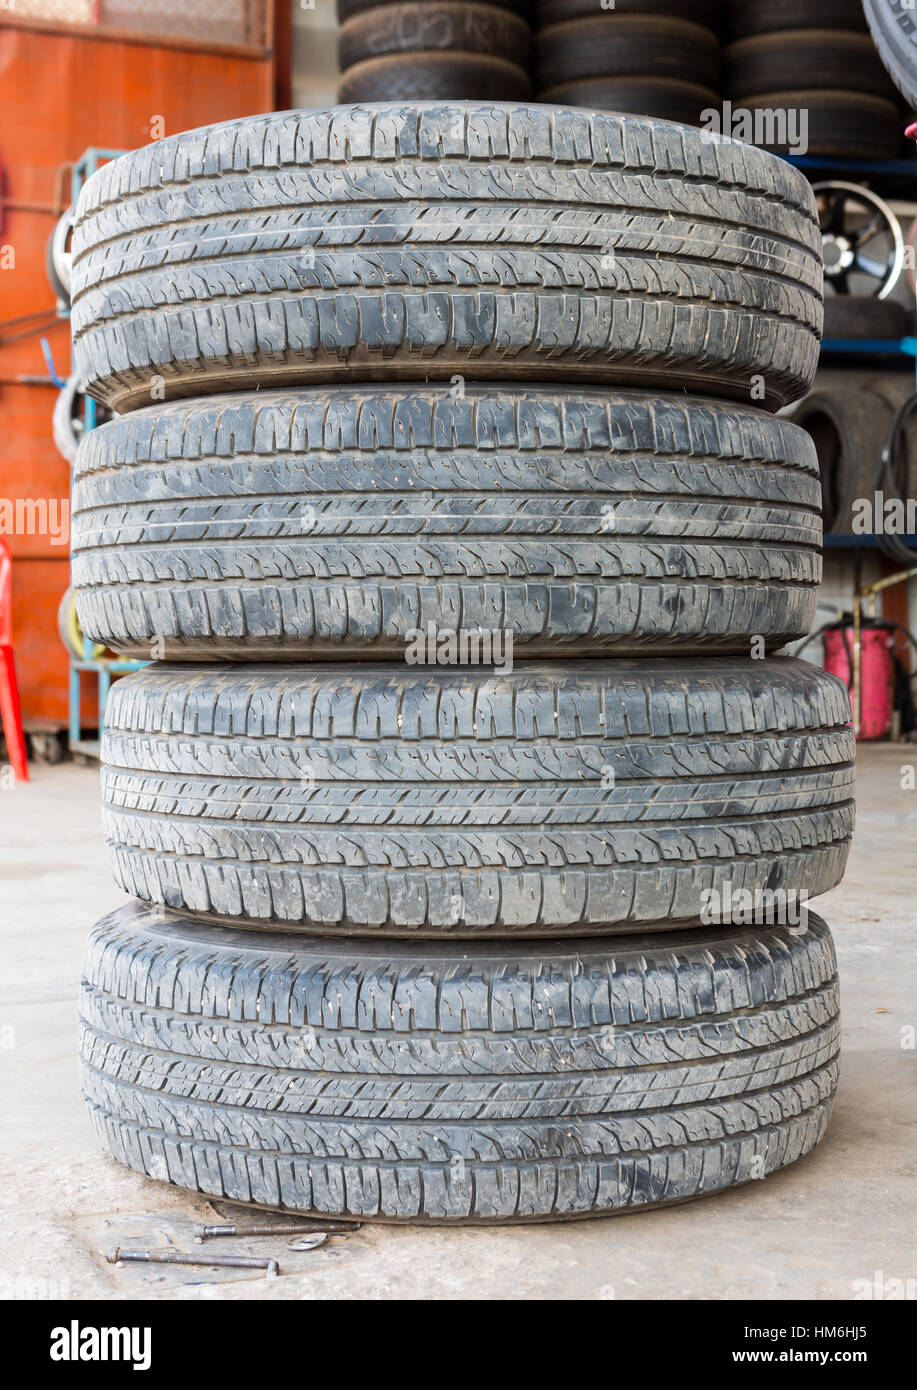 Stack of worn out rubber tire - Stock Image